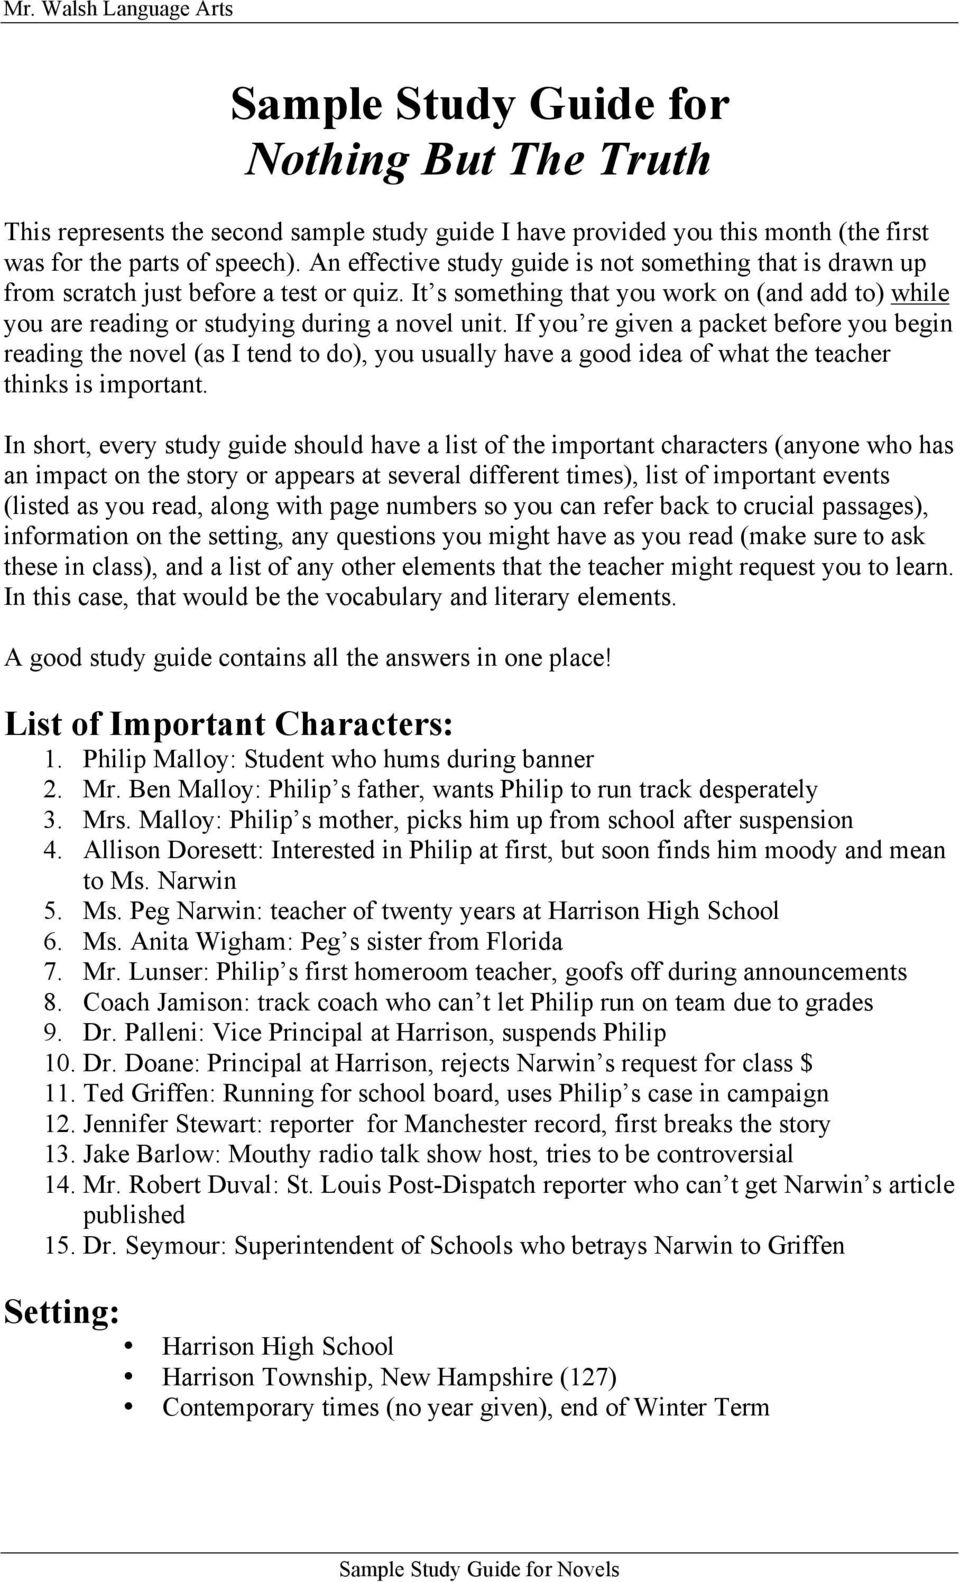 Sample Study Guide for Nothing But The Truth - PDF